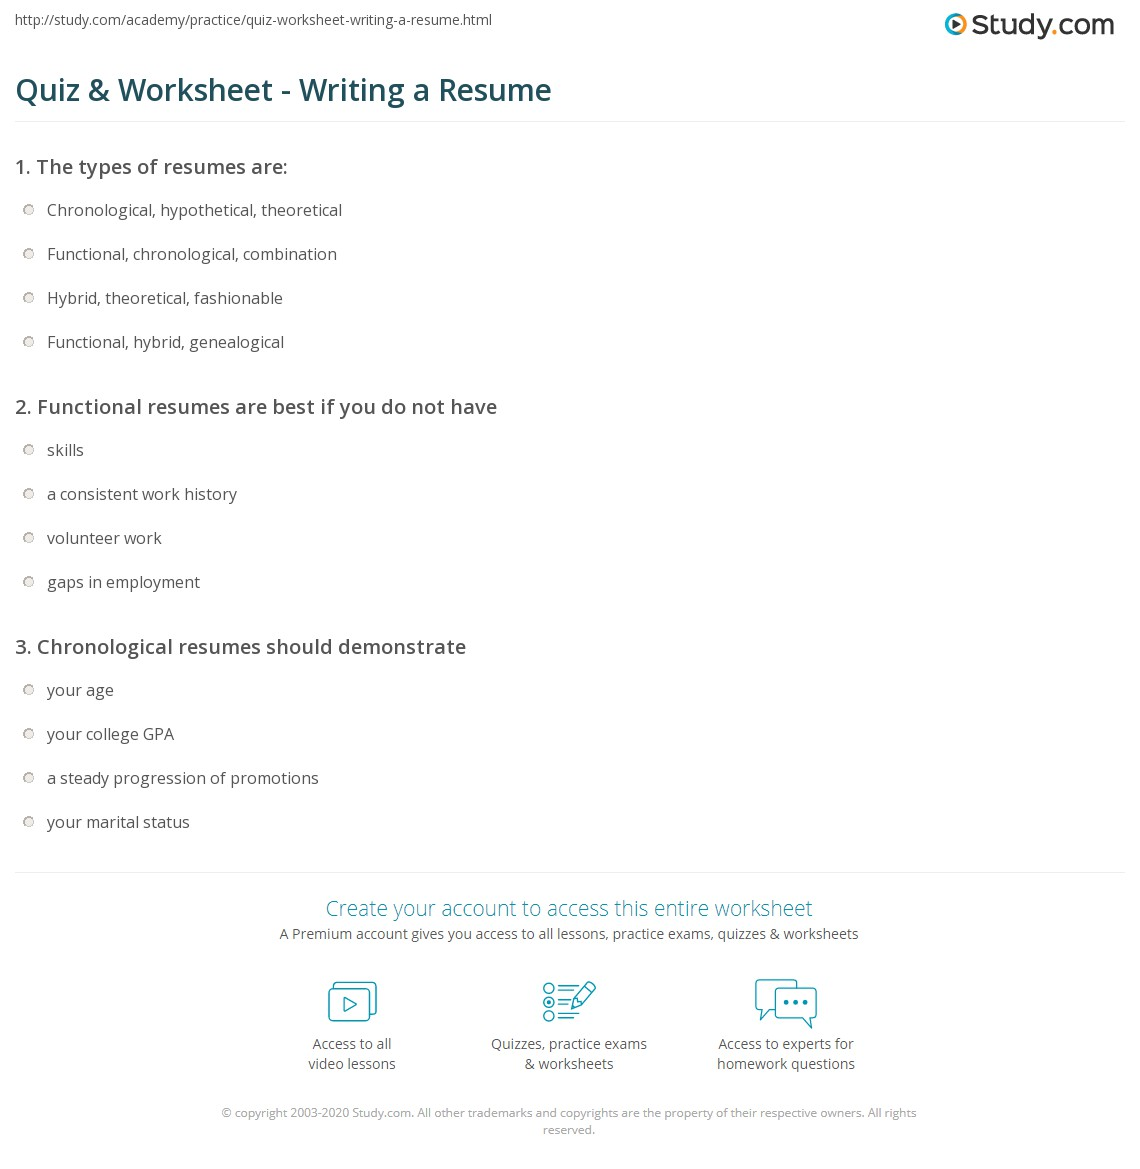 Quiz Worksheet Writing A Resume Study